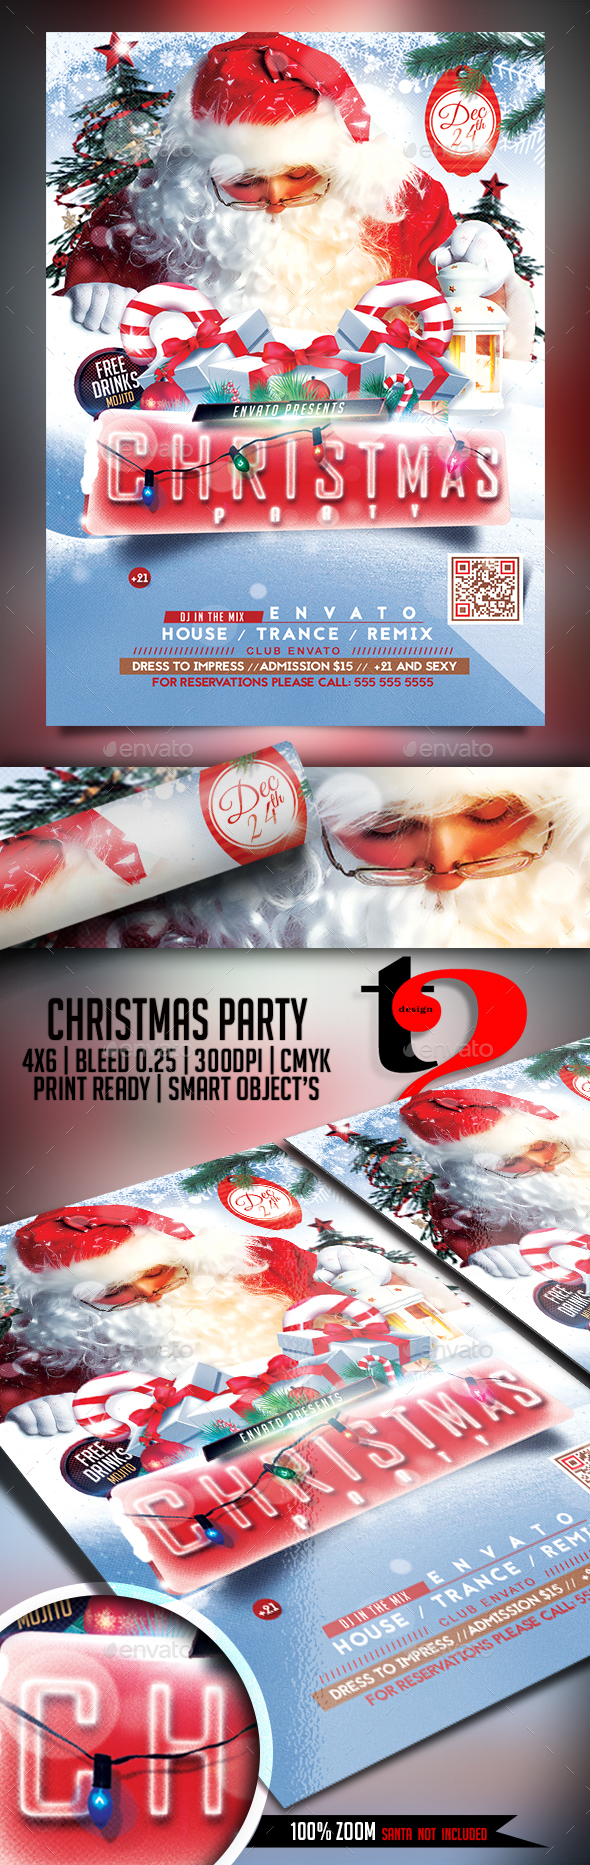 Christmas Party Template - Holidays Events